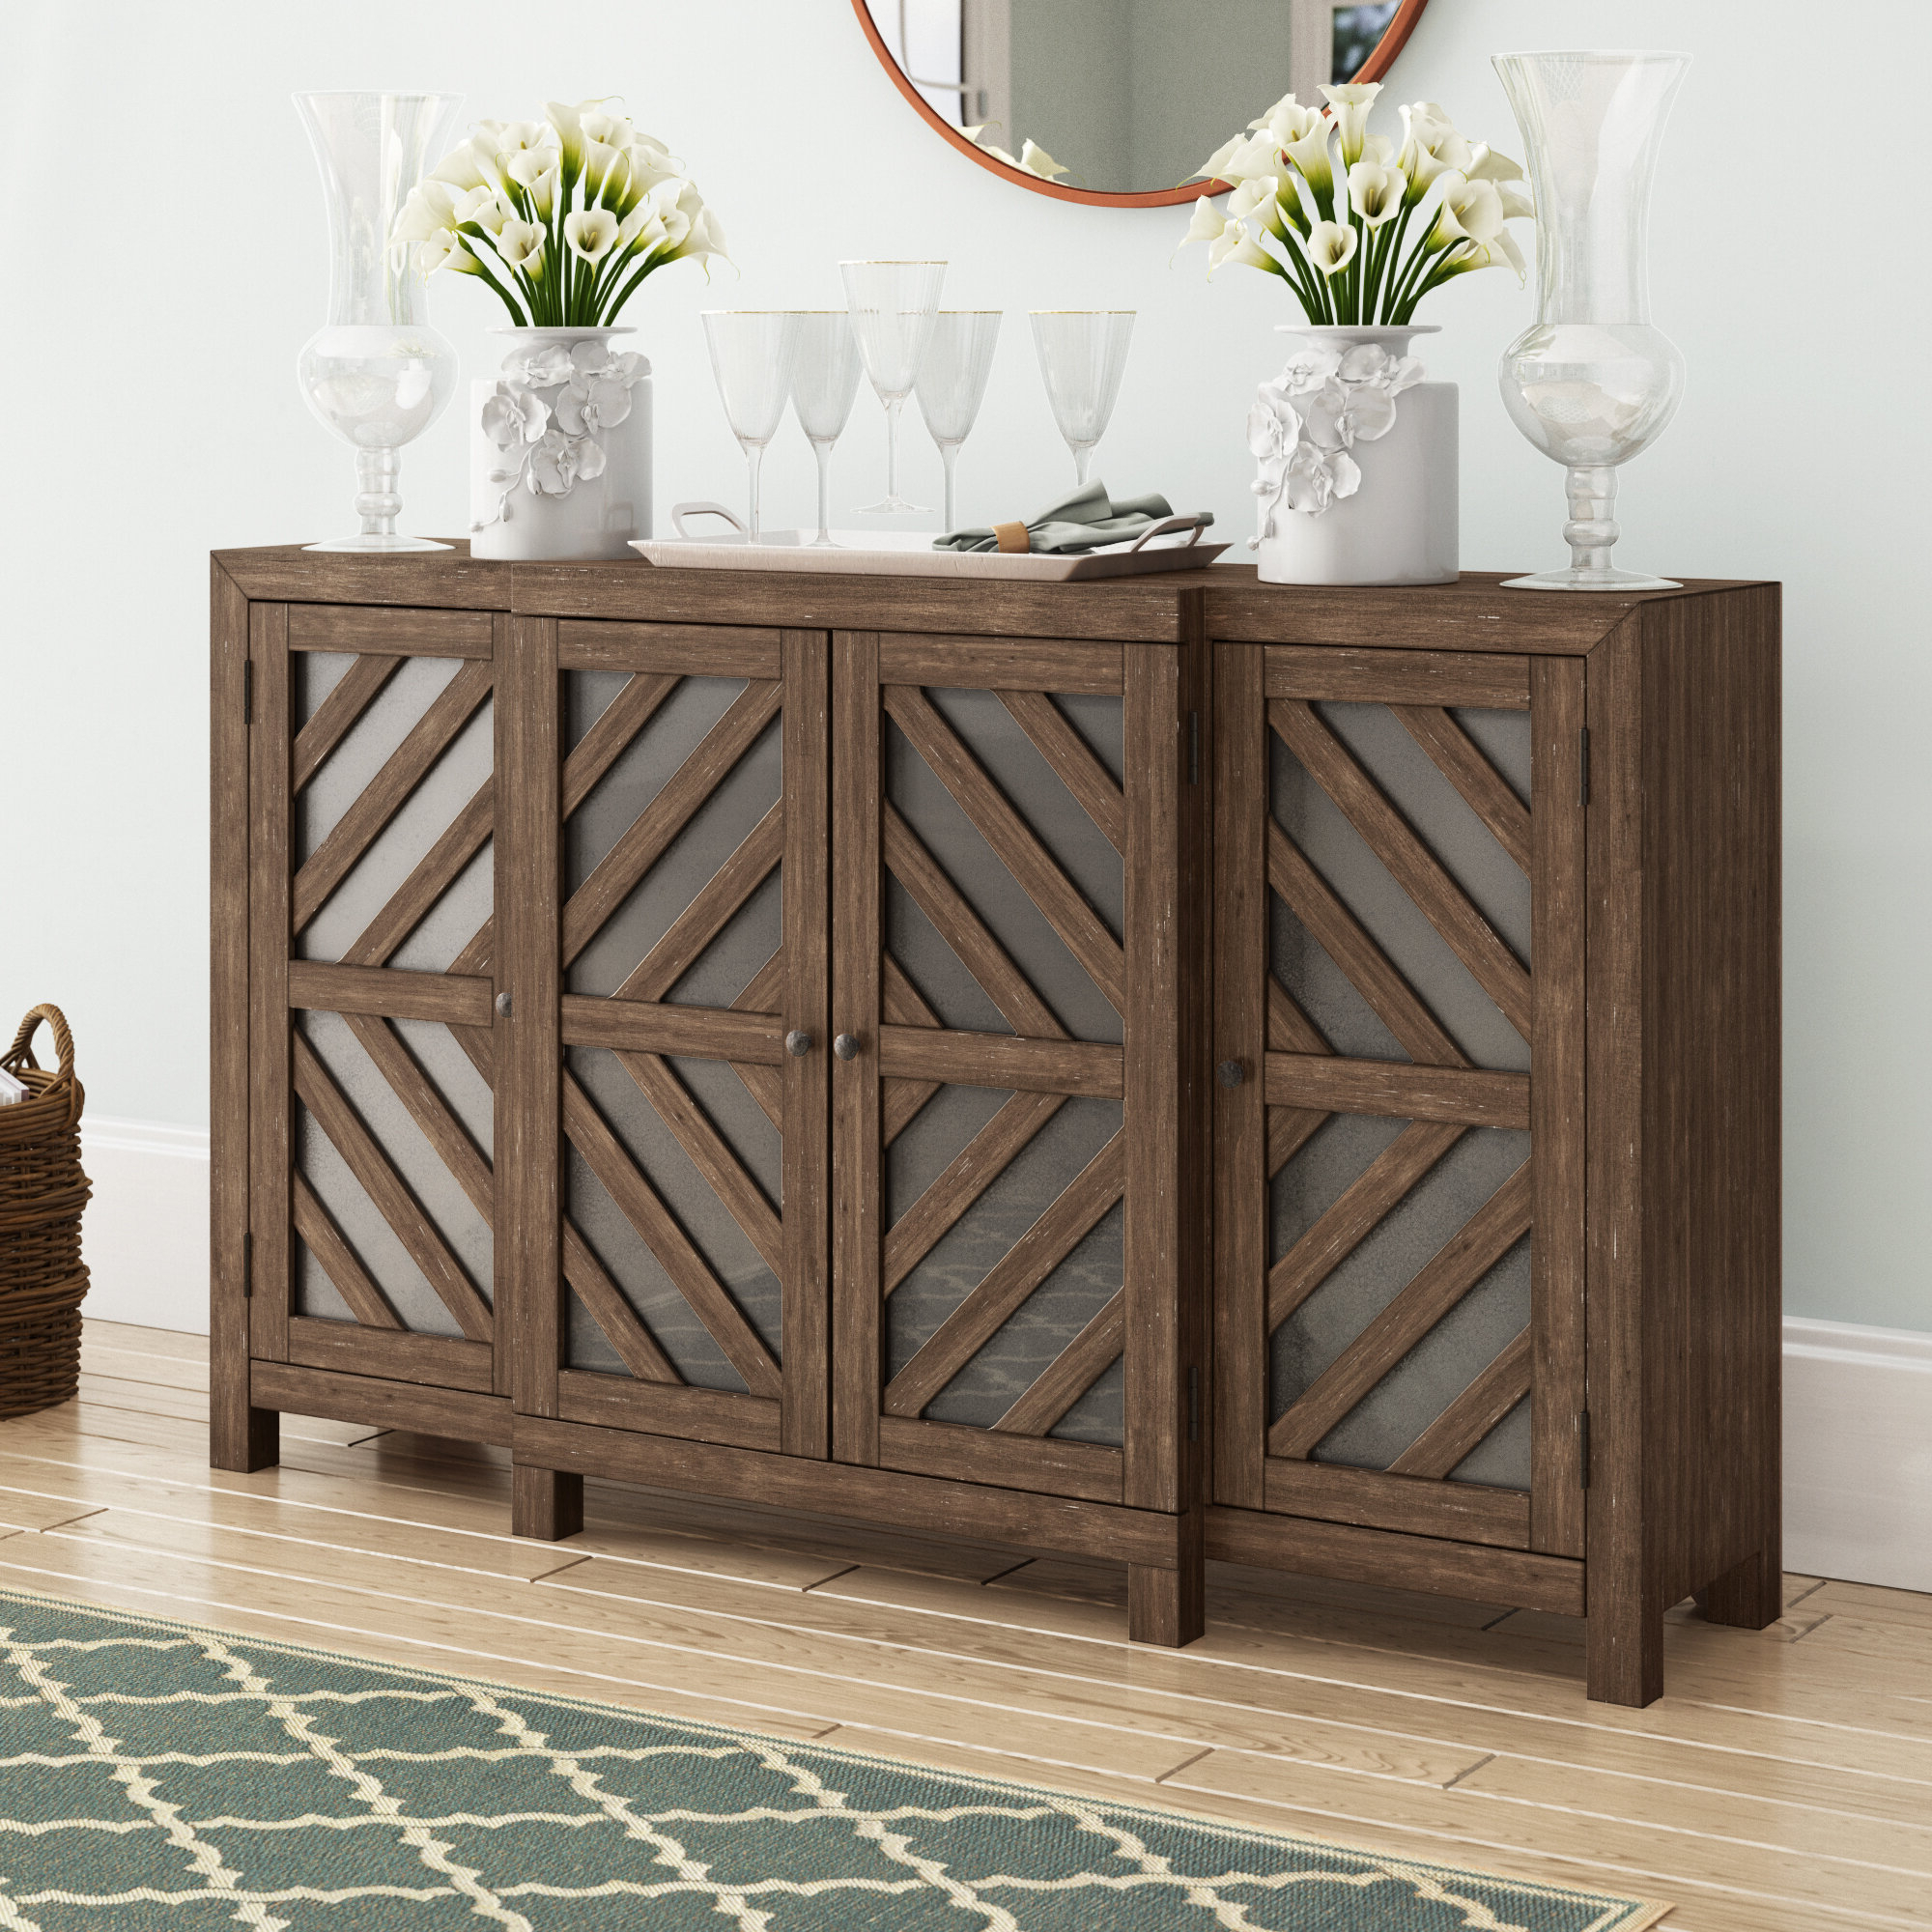 72 Inch Credenza | Wayfair Within Floral Beauty Credenzas (View 13 of 20)